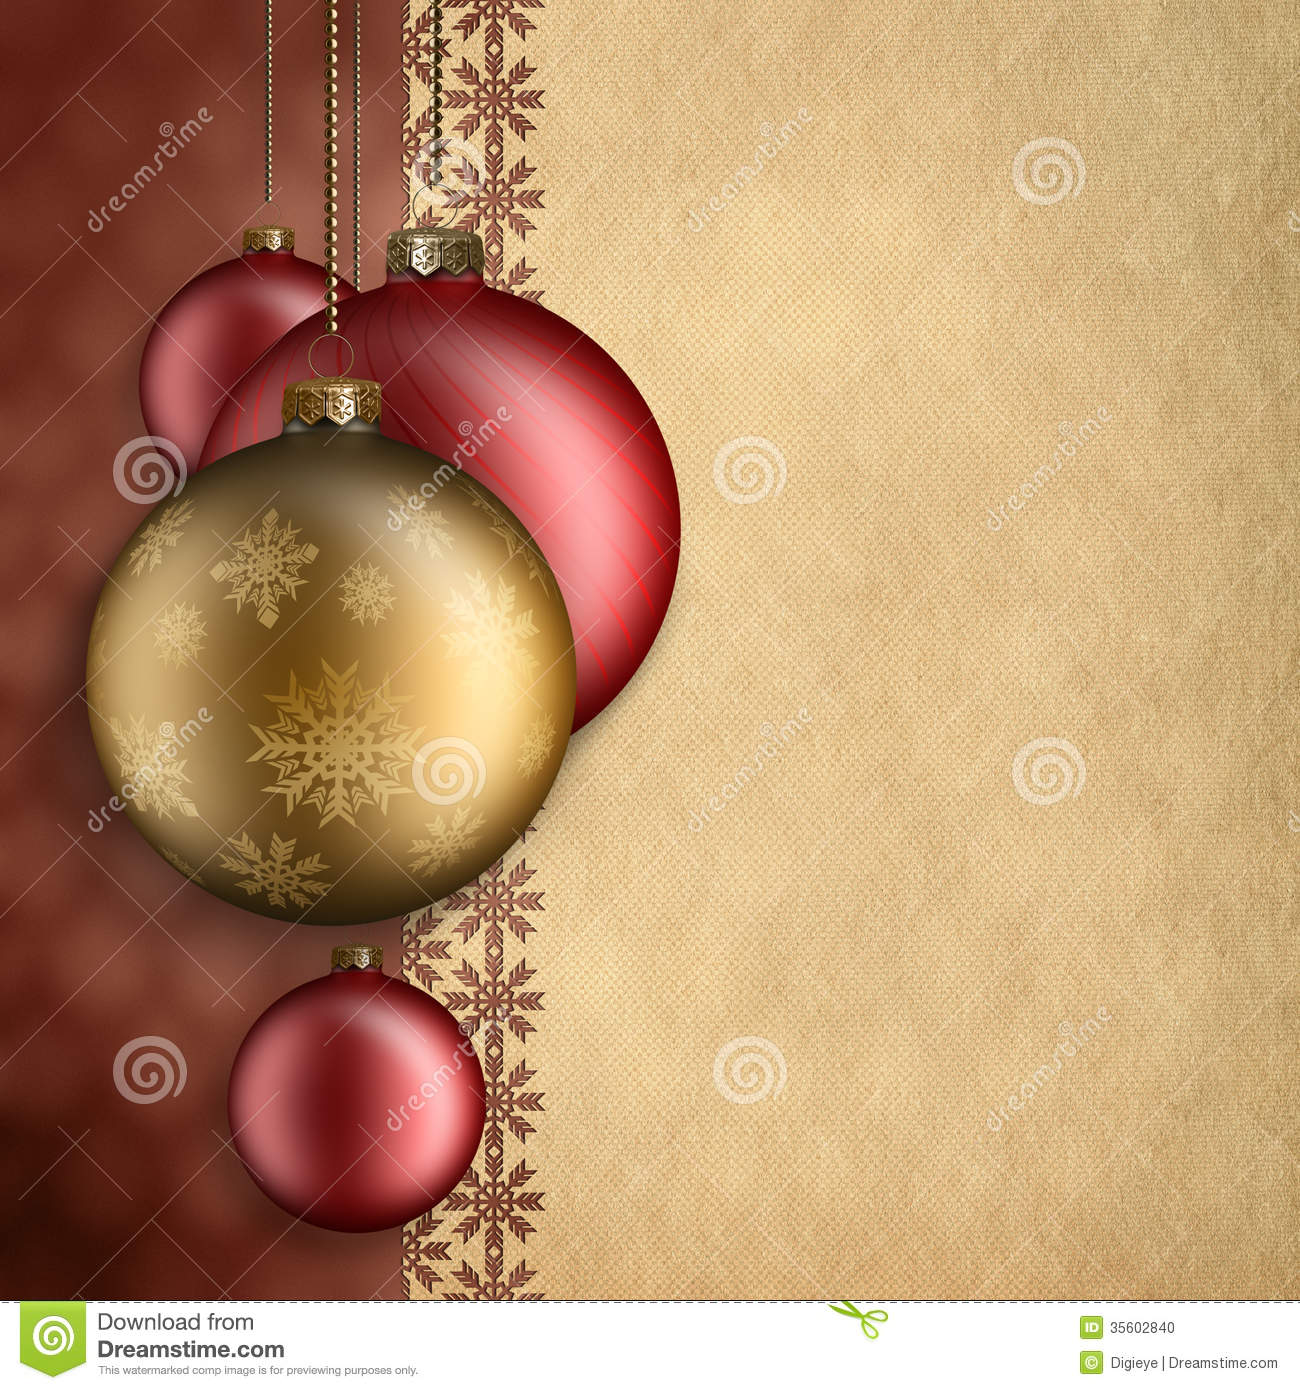 Christmas background - red and gold baubles and blank space for text.